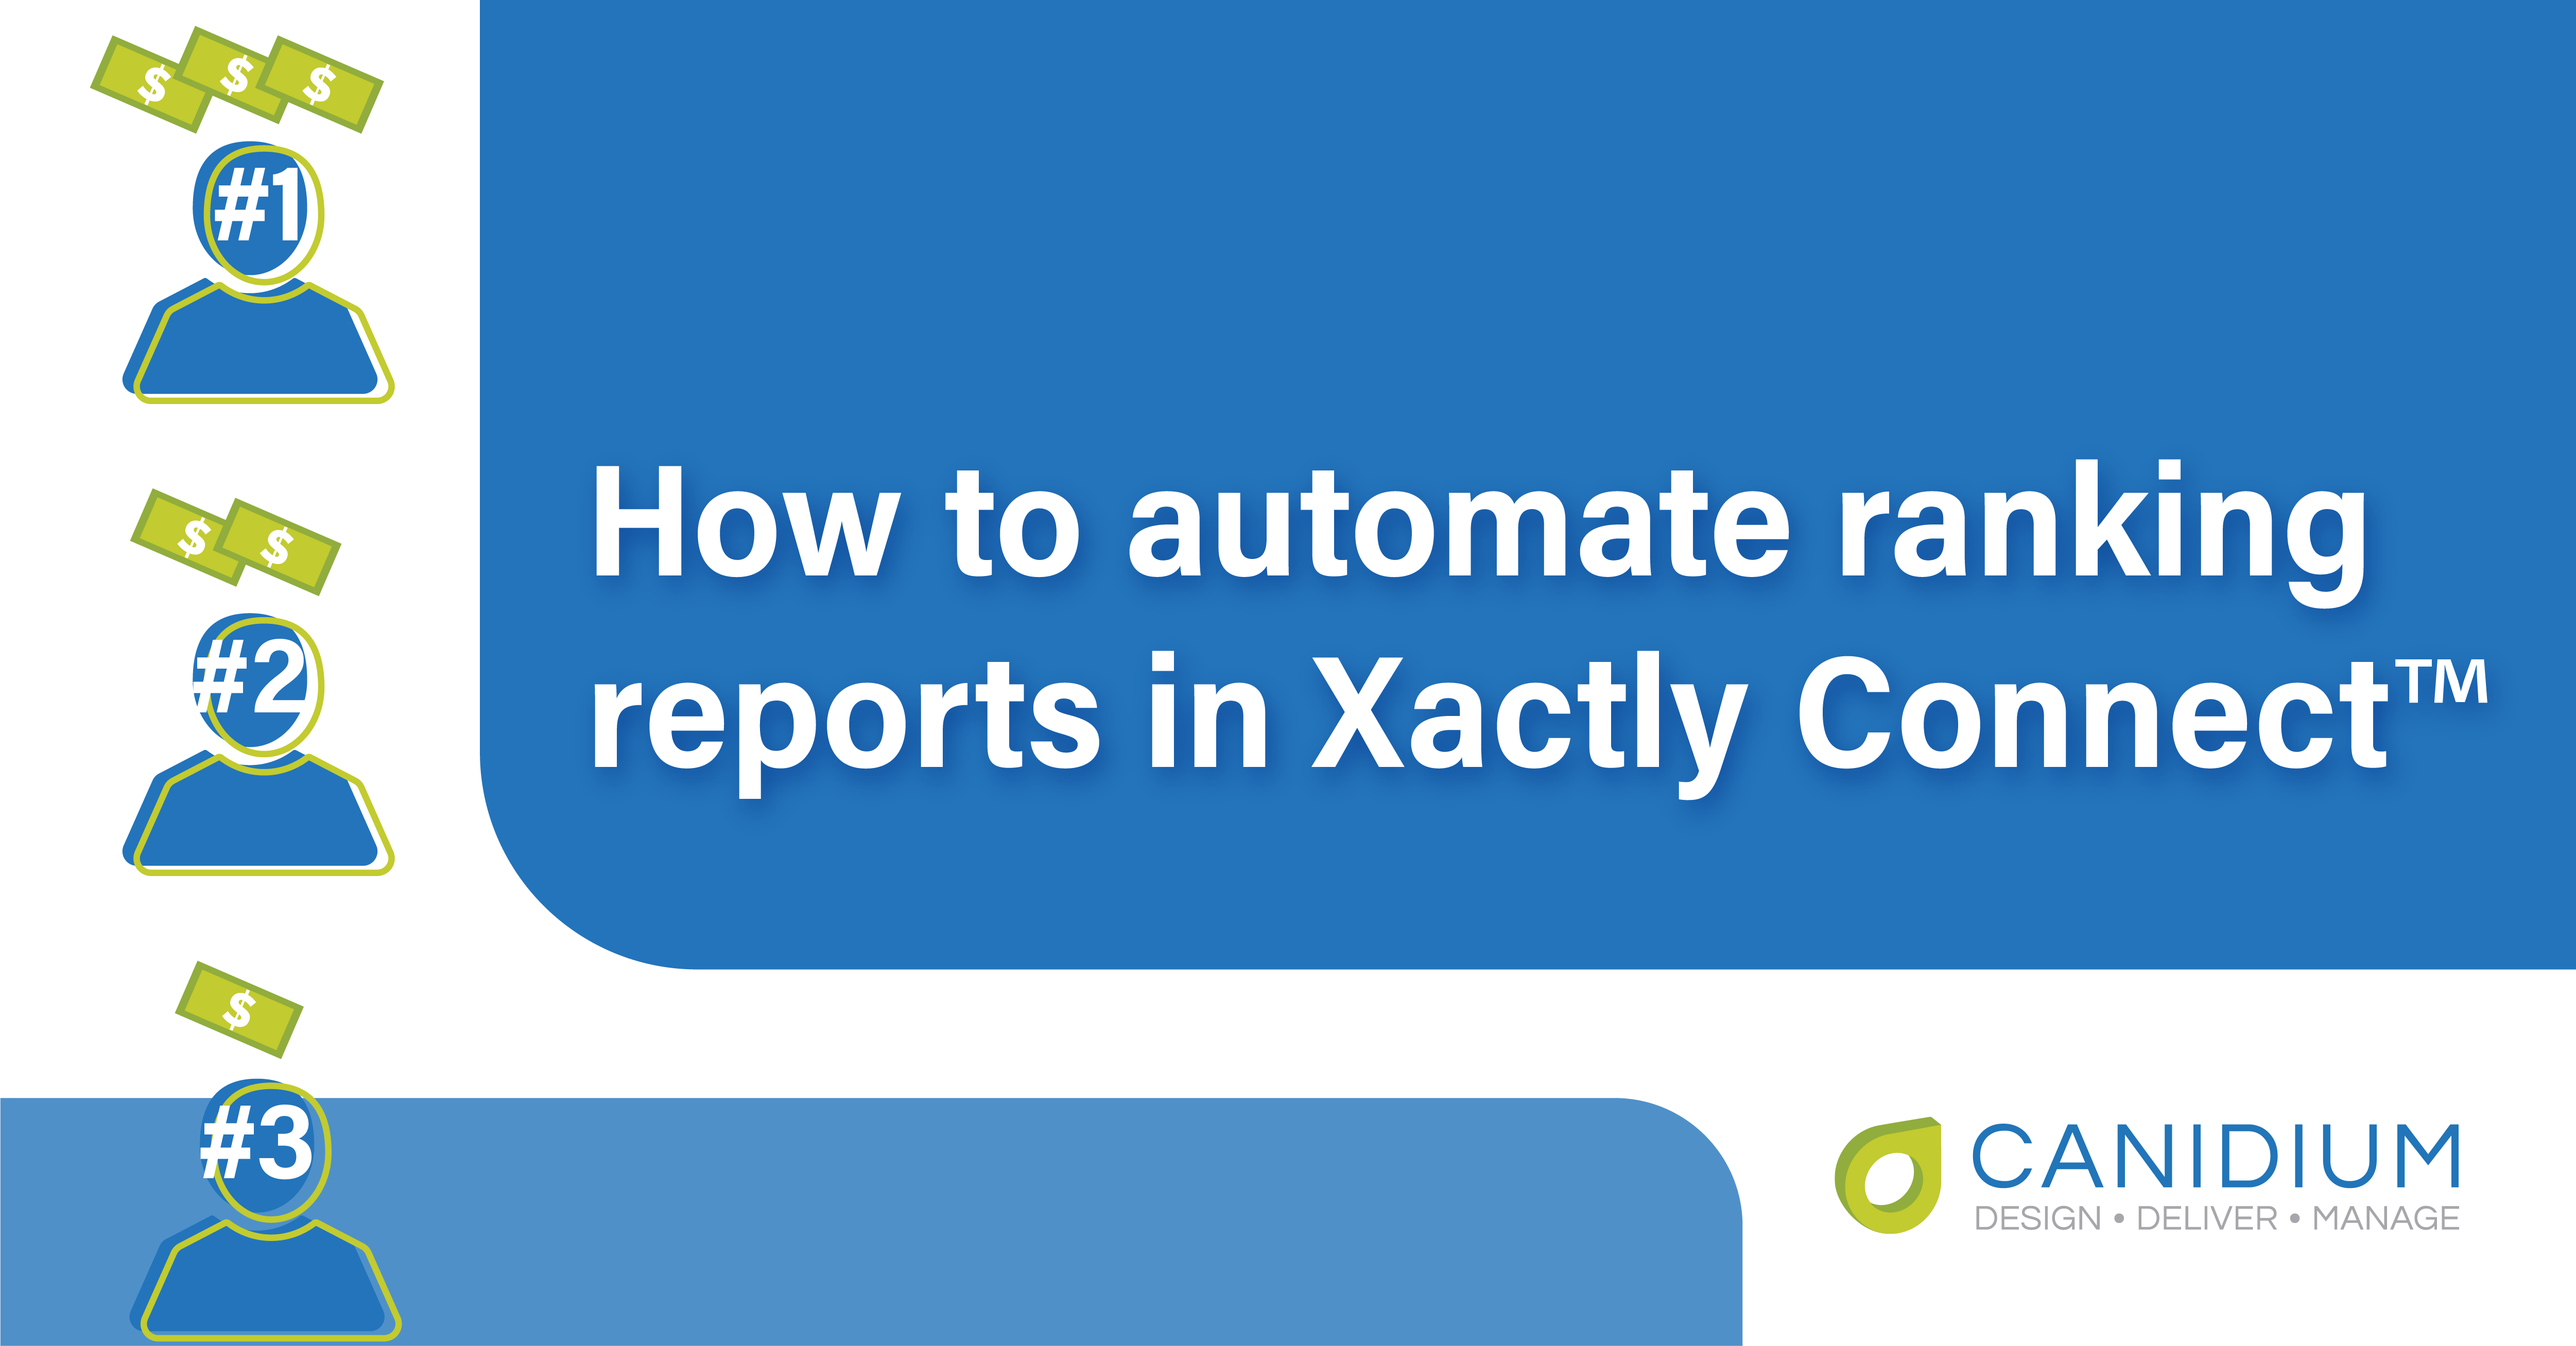 How to automate ranking reports in Xactly Connect™